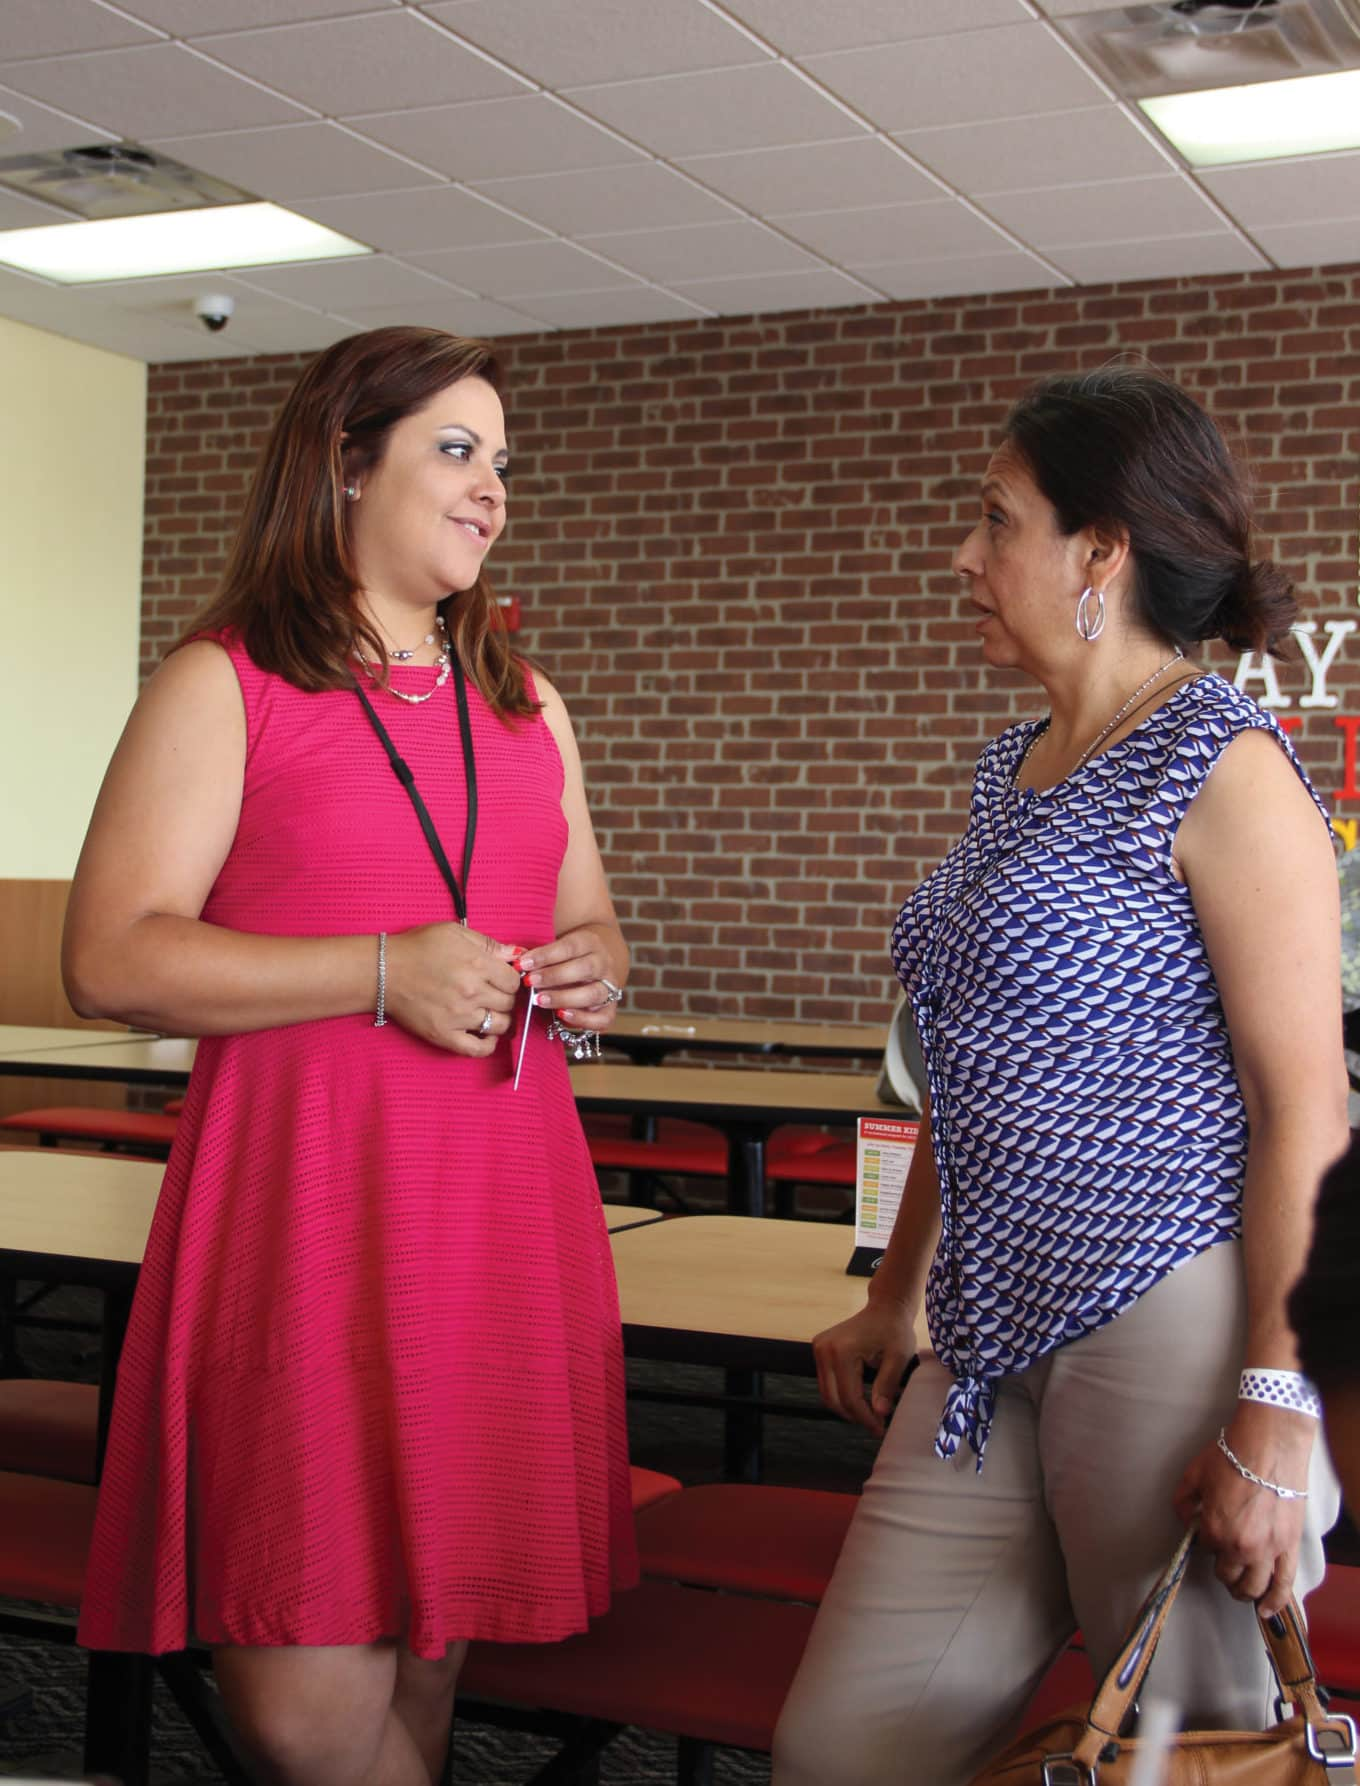 Outreach staff meets with school staff